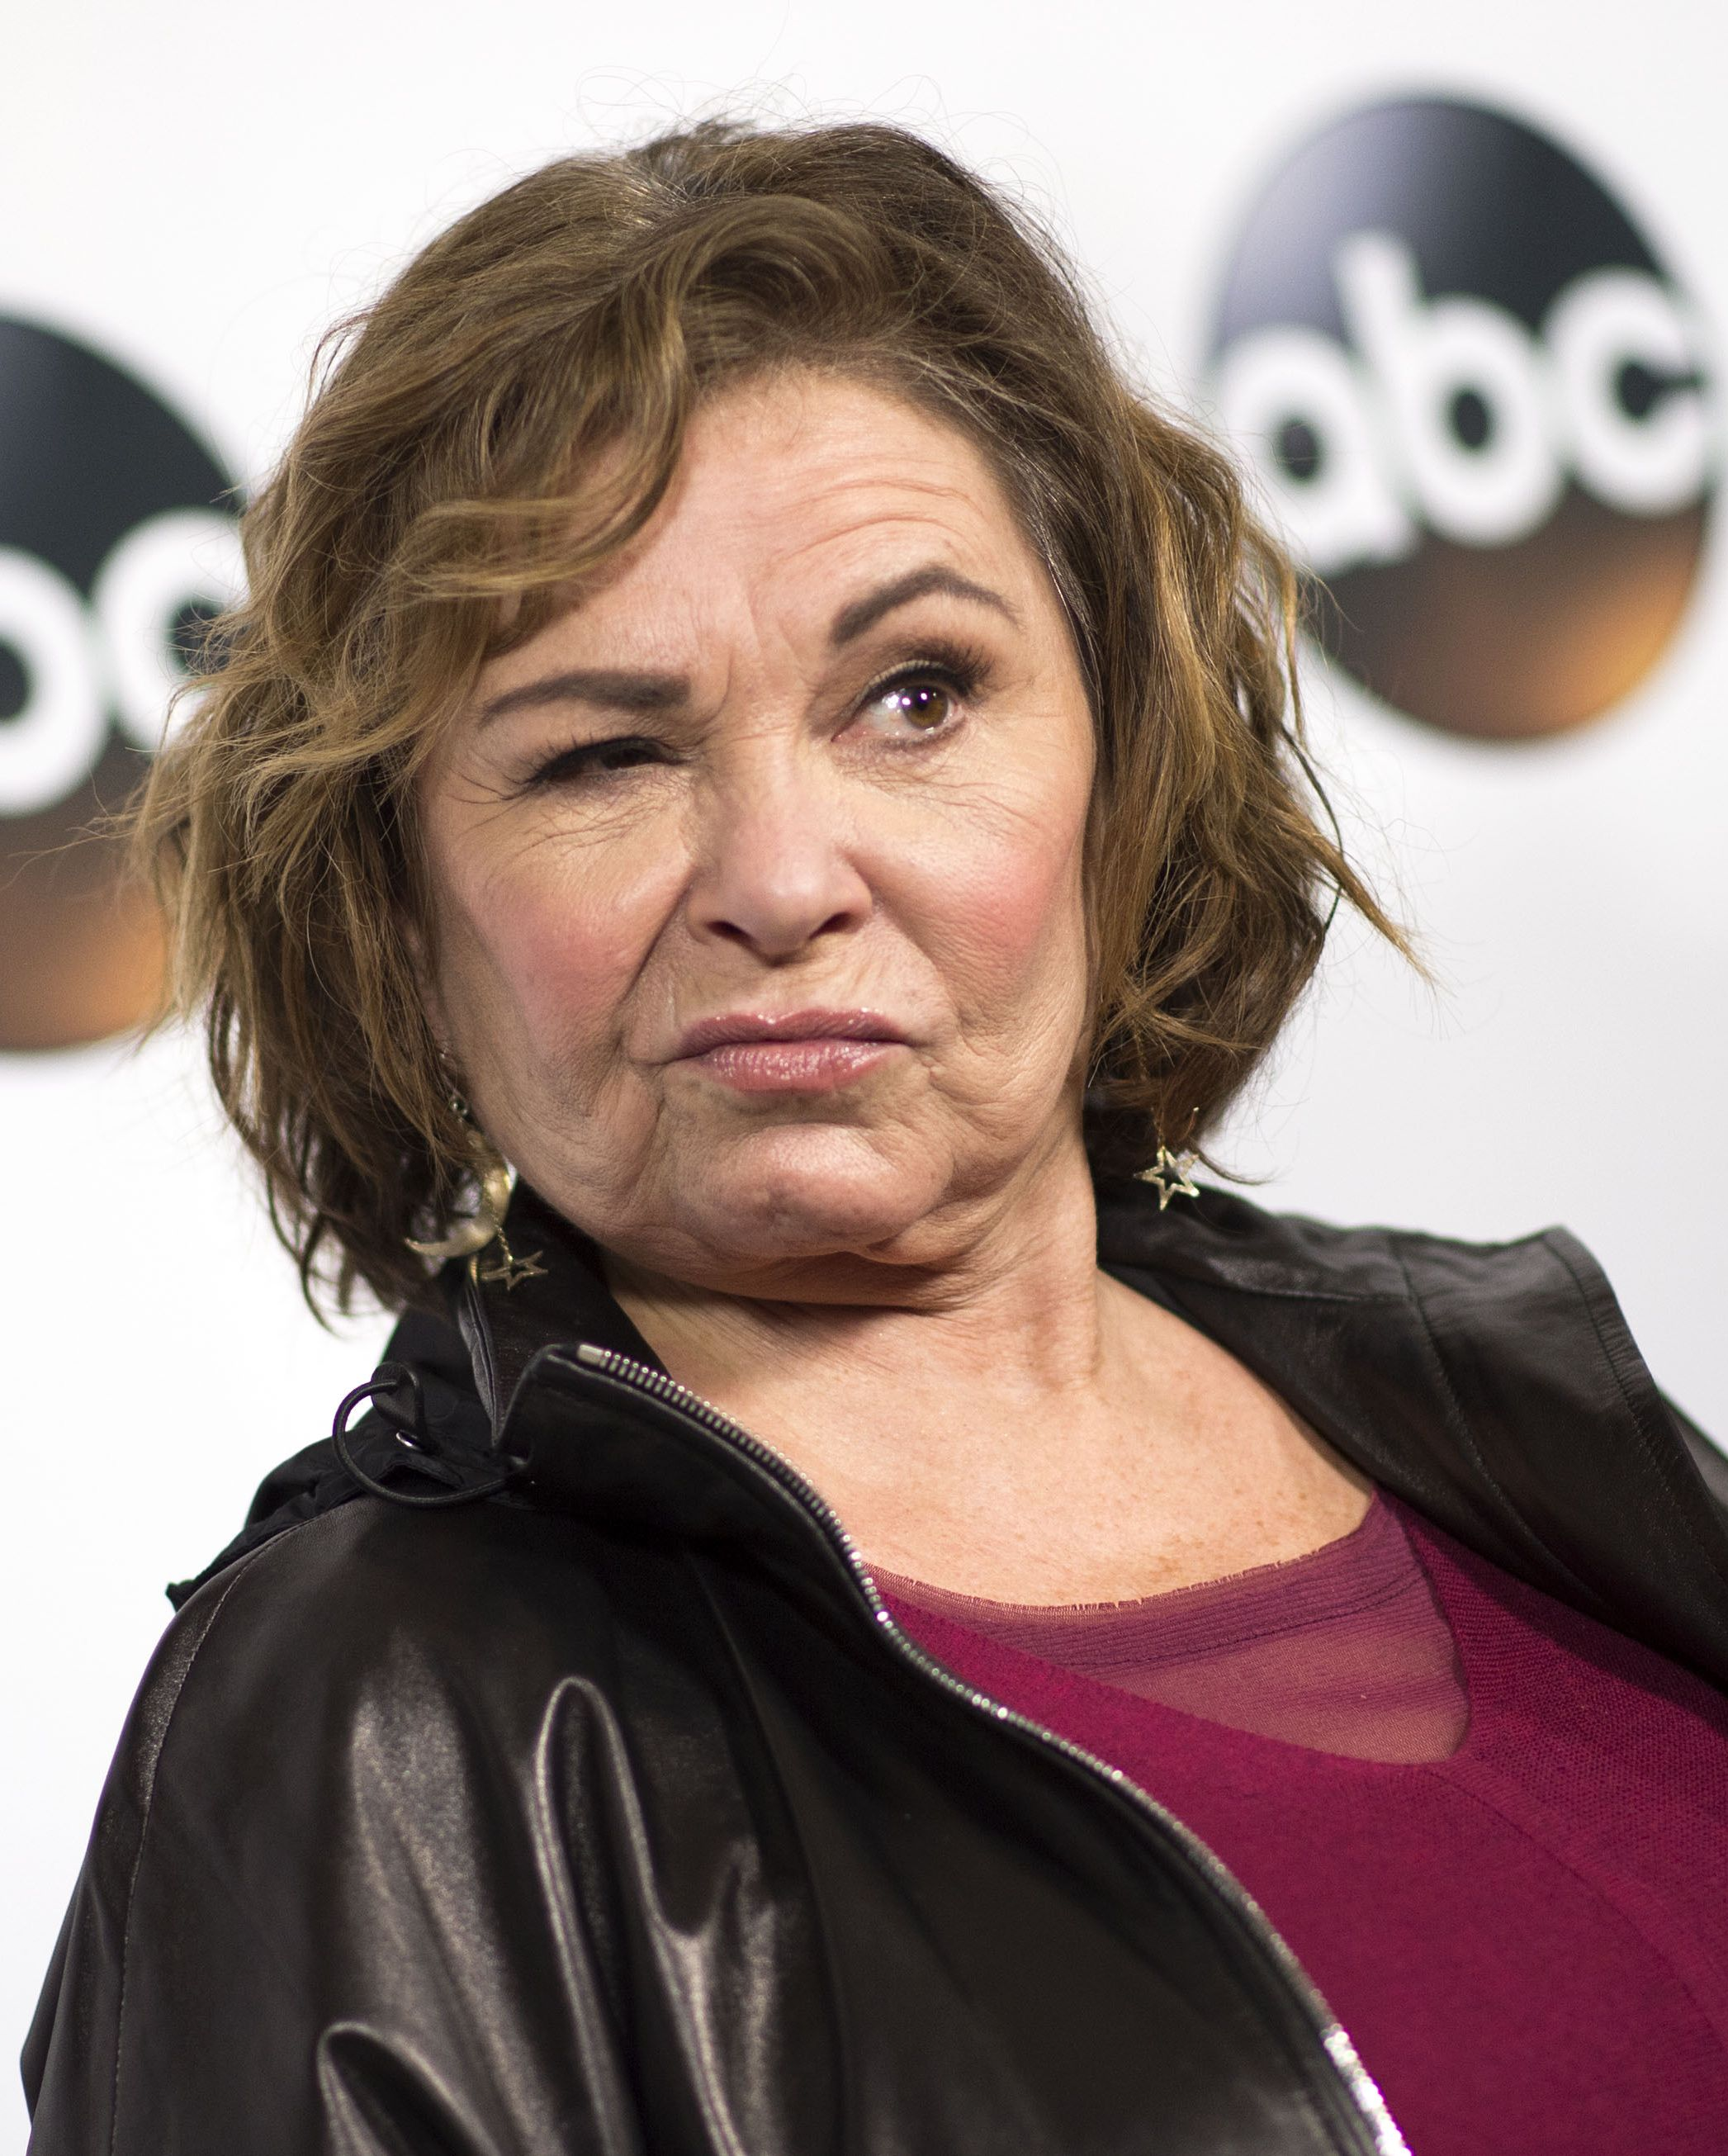 Roseanne Barr Speaks Out After 'The Conners' Premiere Last Night